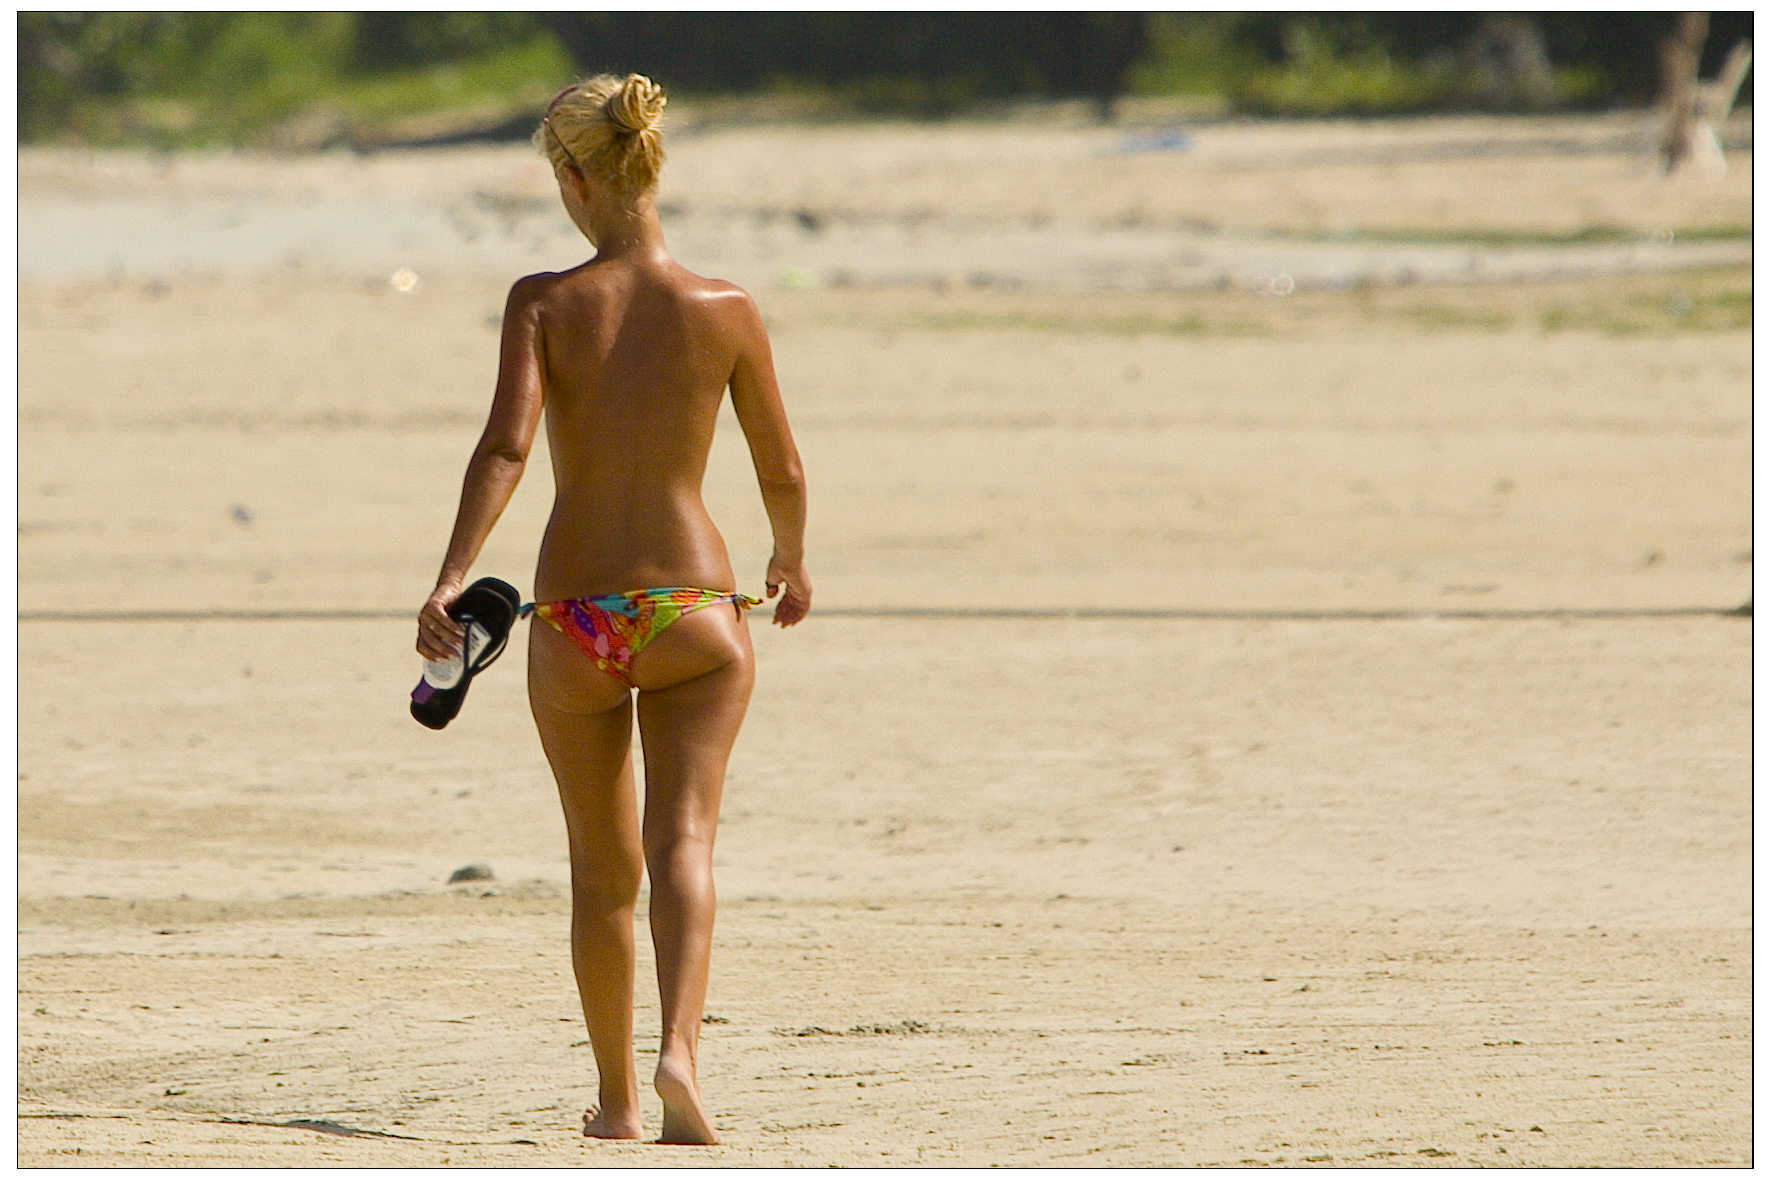 To The Girl Showing Her Entire Butt At The Beach, You Do You